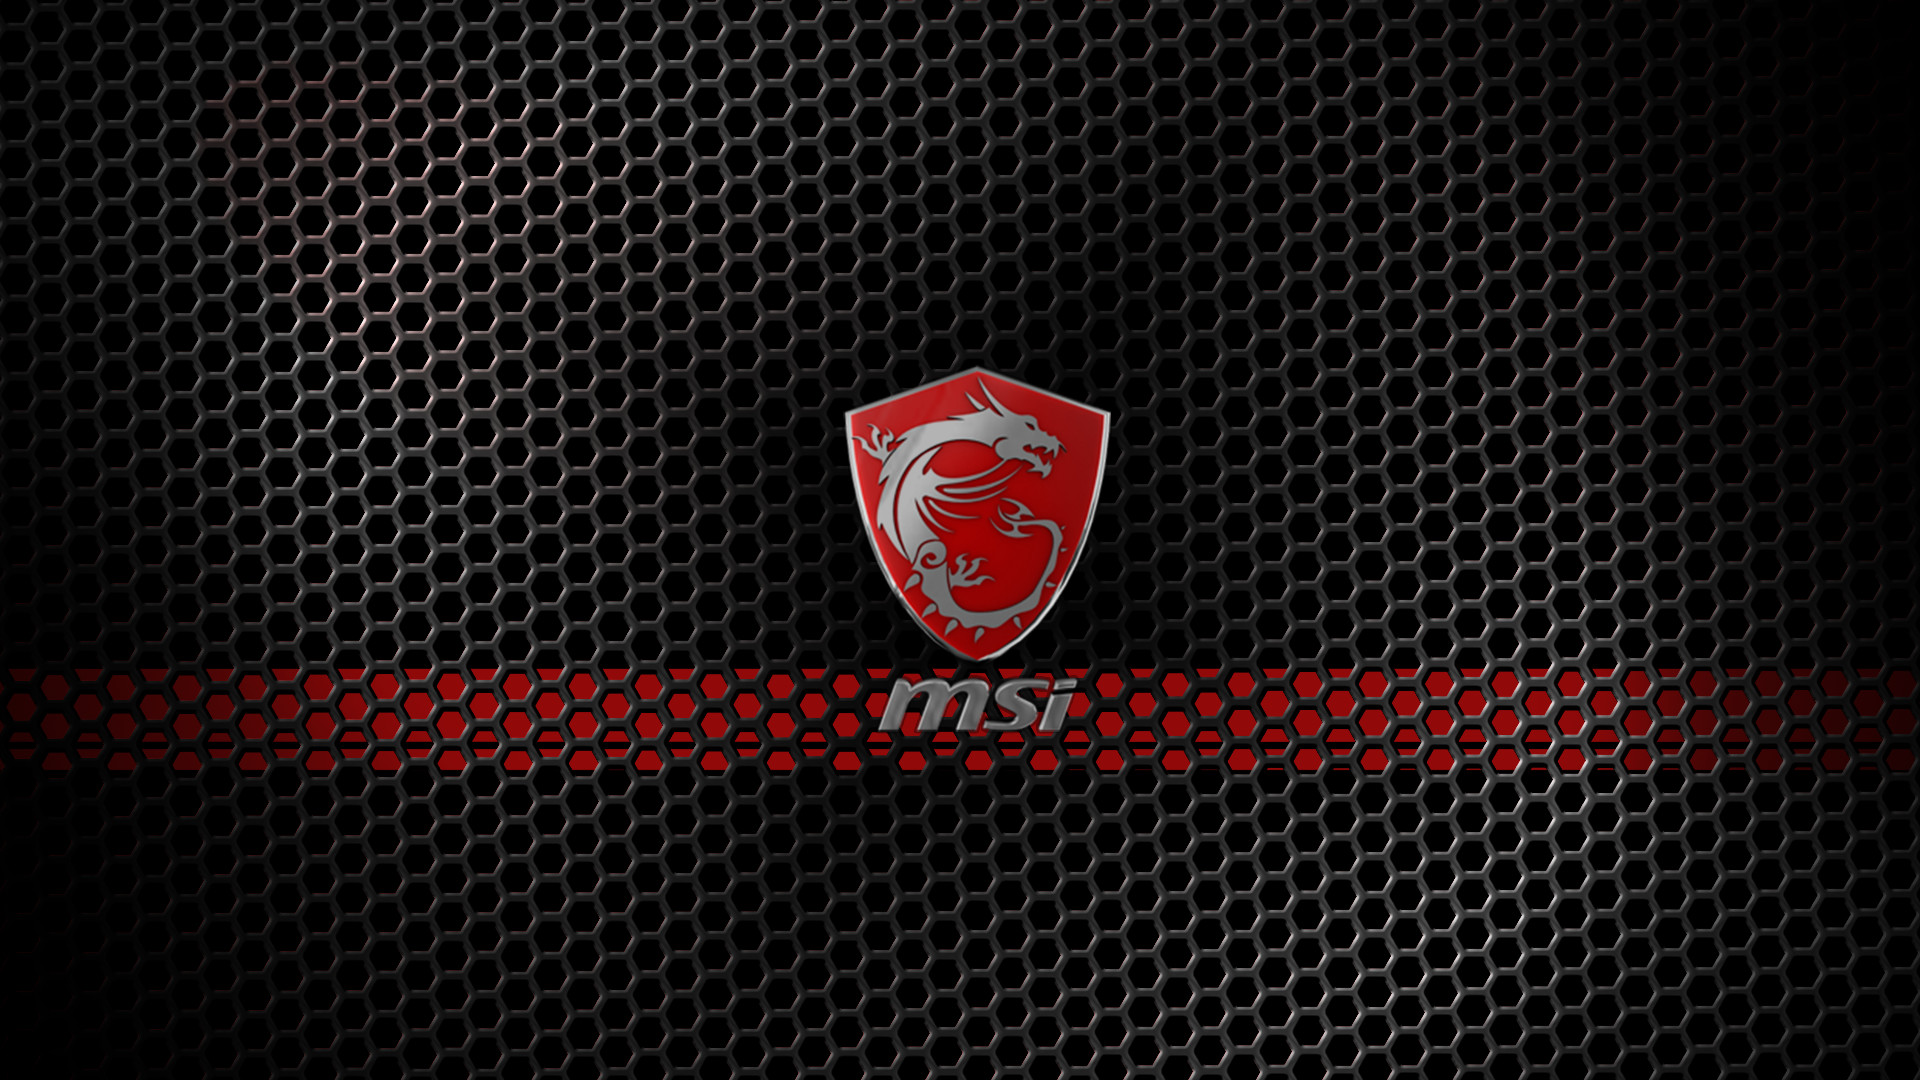 1920x1080 awesome MSI Laptop Background Collections - Set 2 | MSI Laptops Backgounds  Singapore - SG | Pinterest | Digital marketing